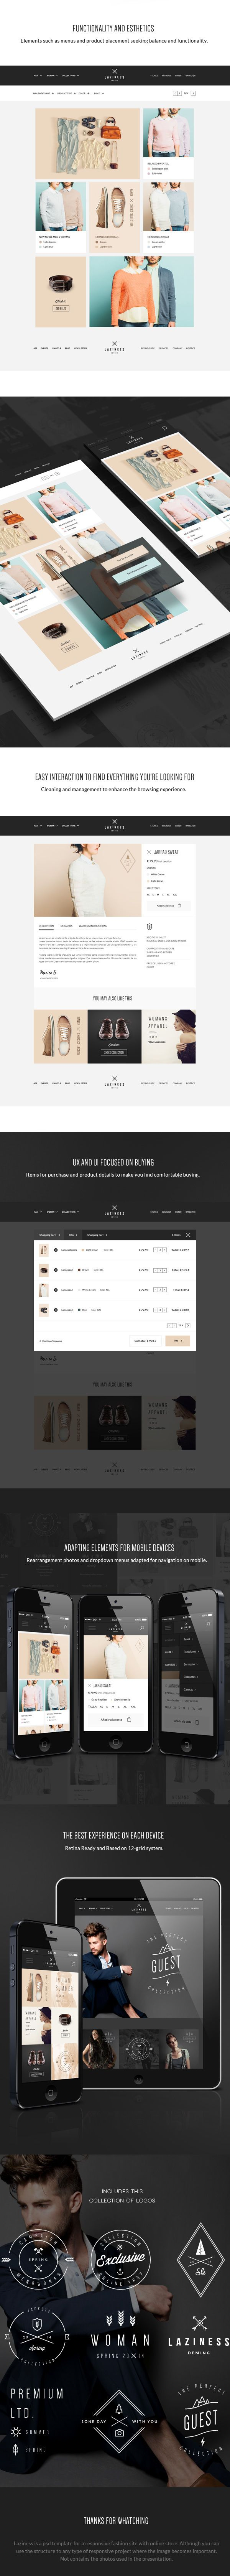 Laziness psd Theme by Julián Pascual, via Behance